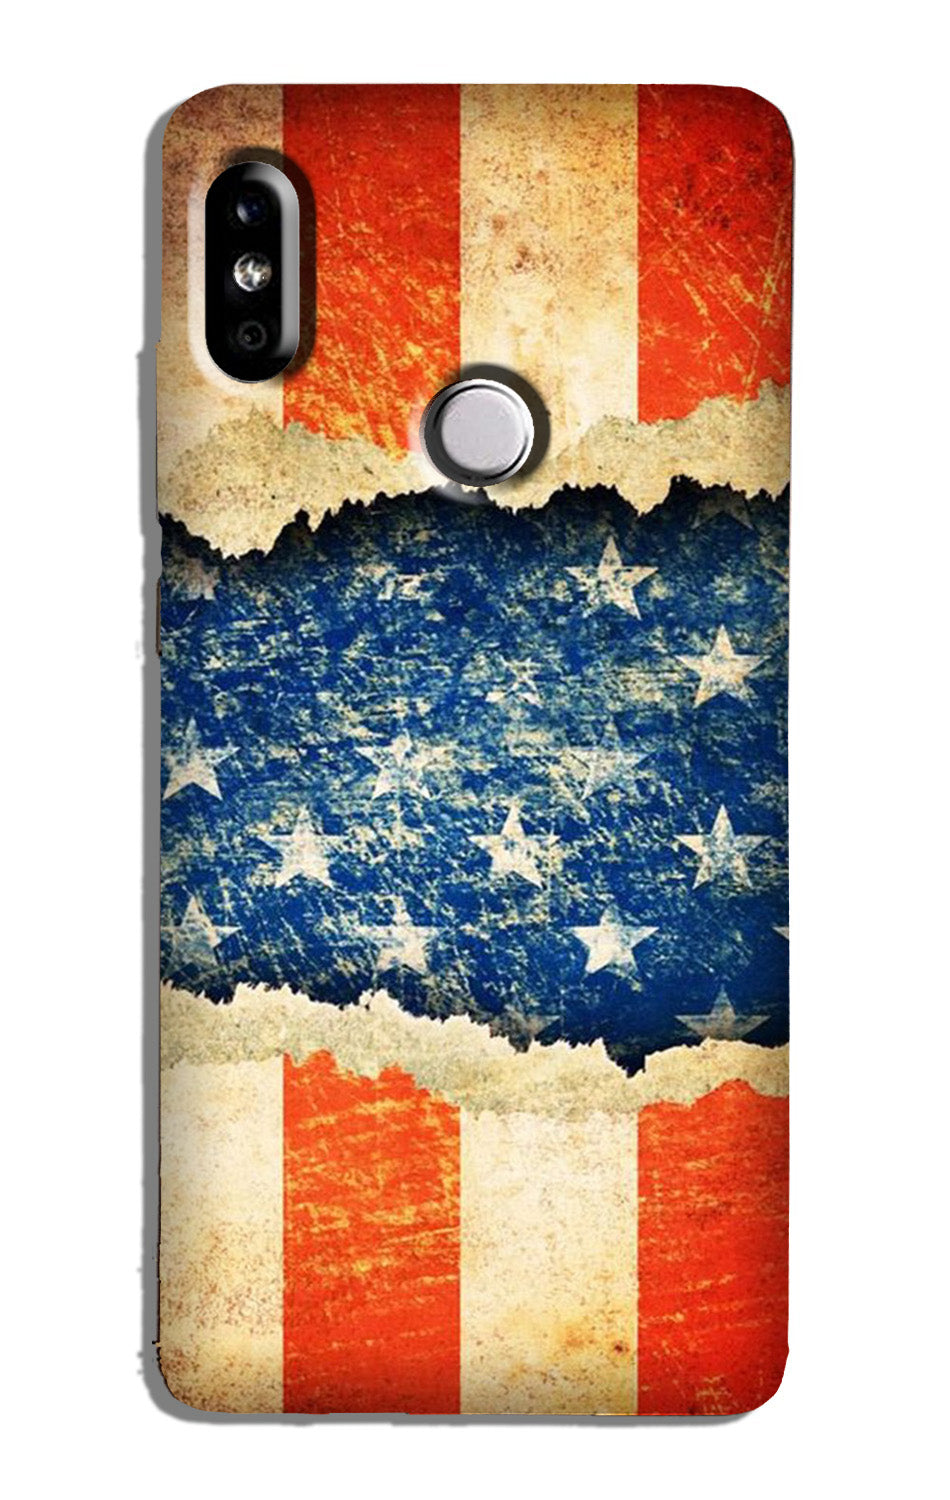 United Kingdom Case for Redmi Y2